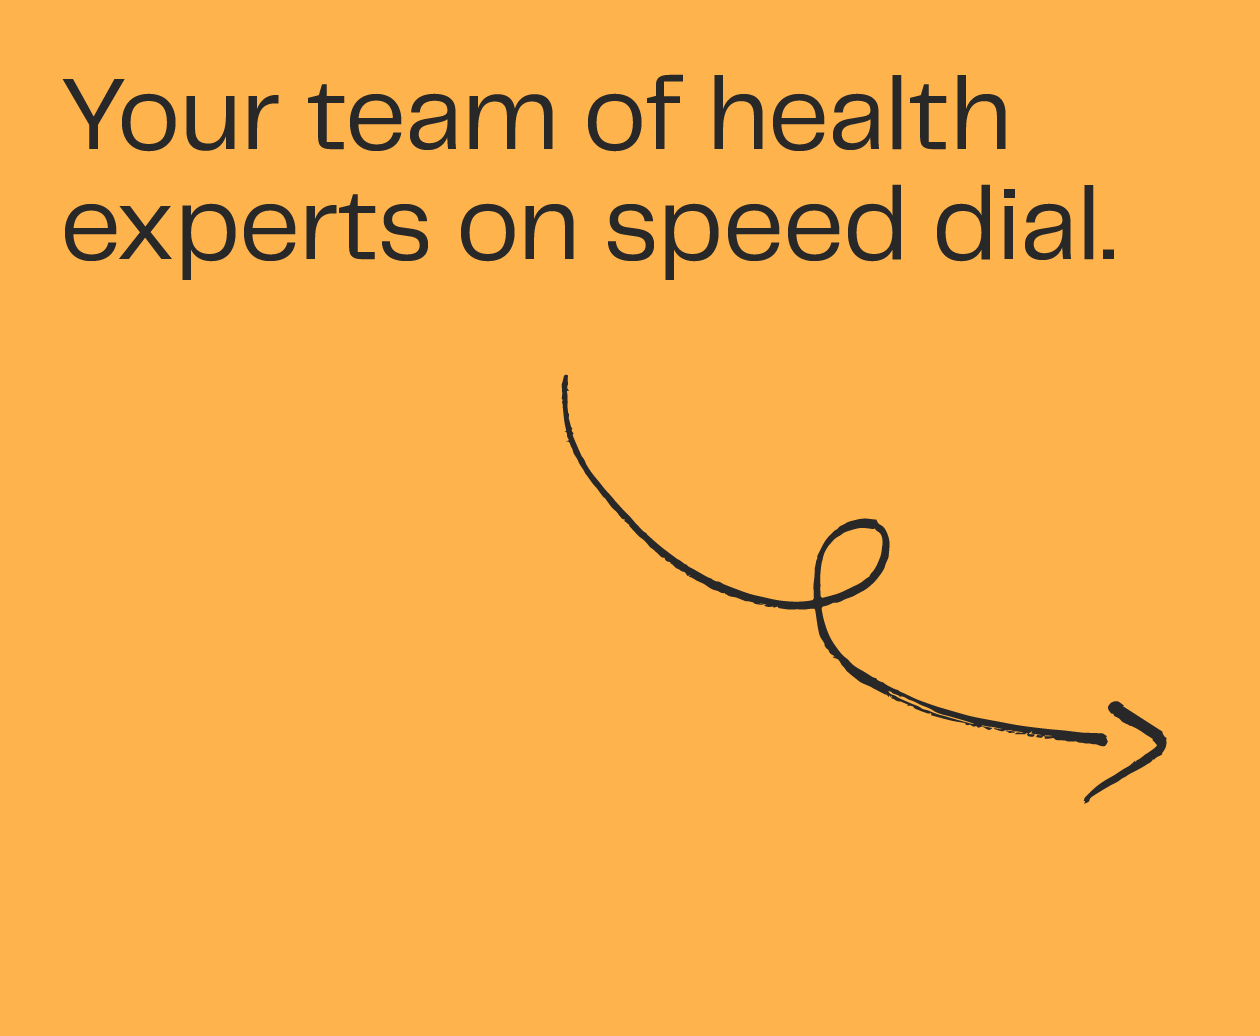 Your team of health experts on speed dial